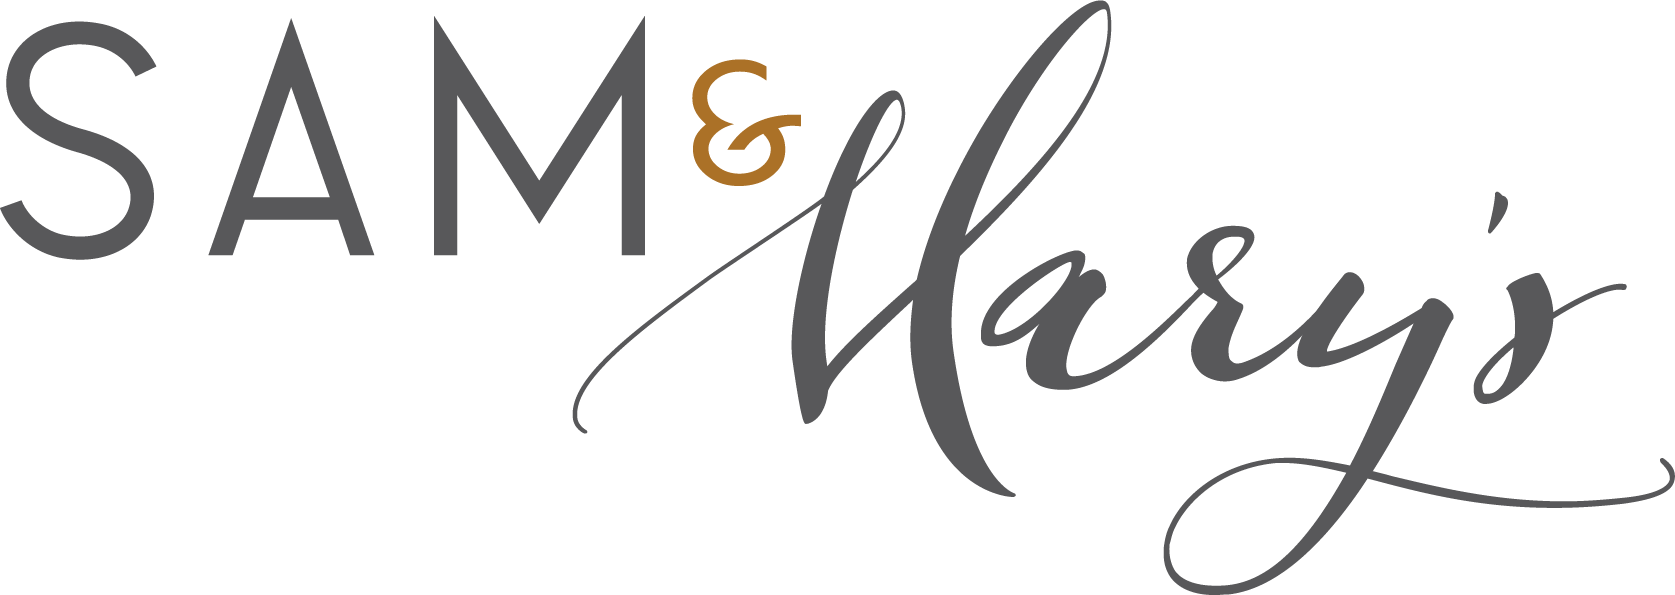 Sam and Mary's Restaurant logo